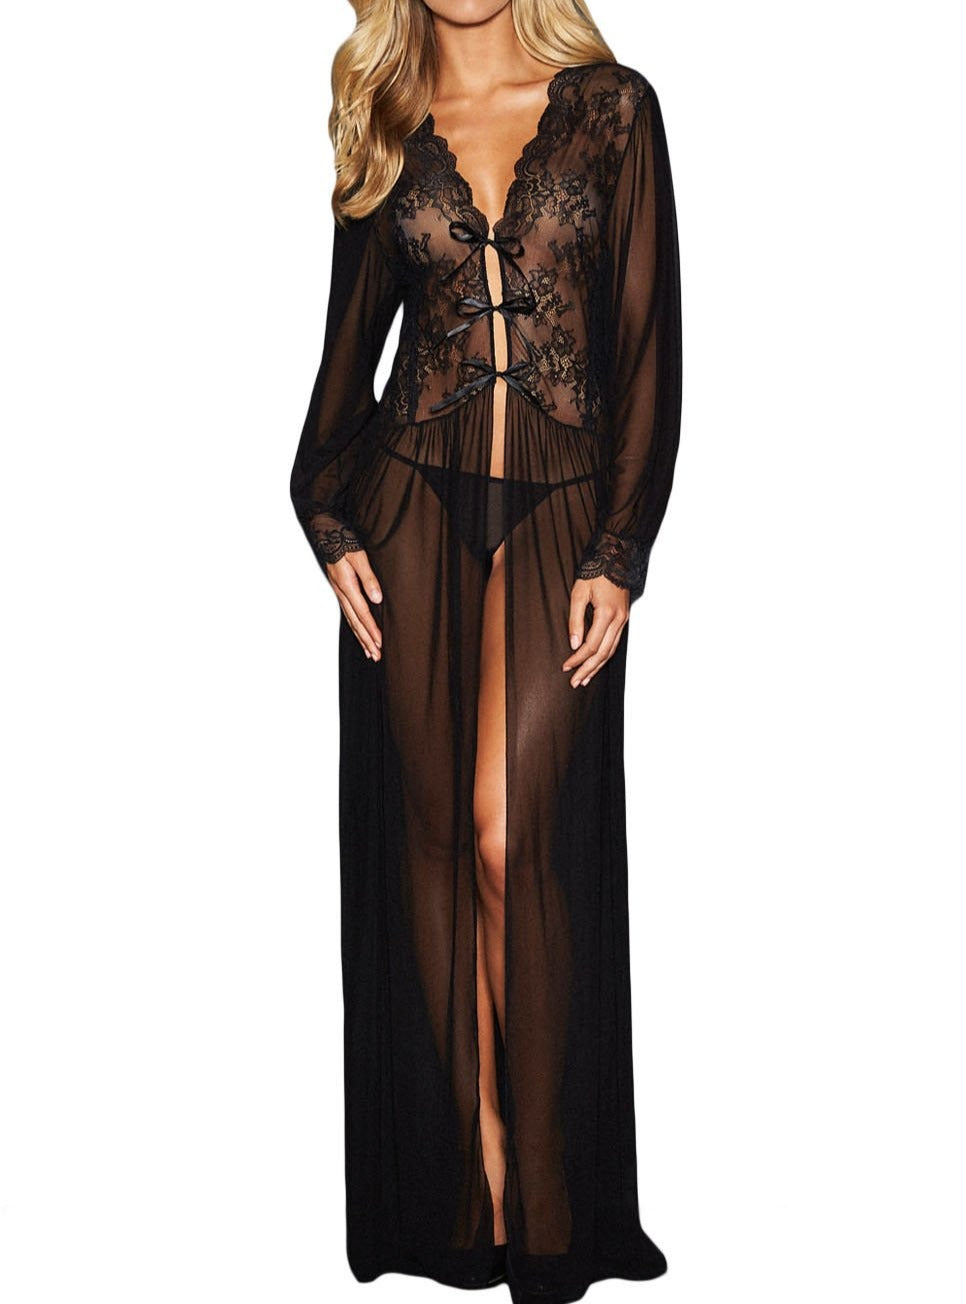 Sheer Long Sleeve Lace Robe with Thong